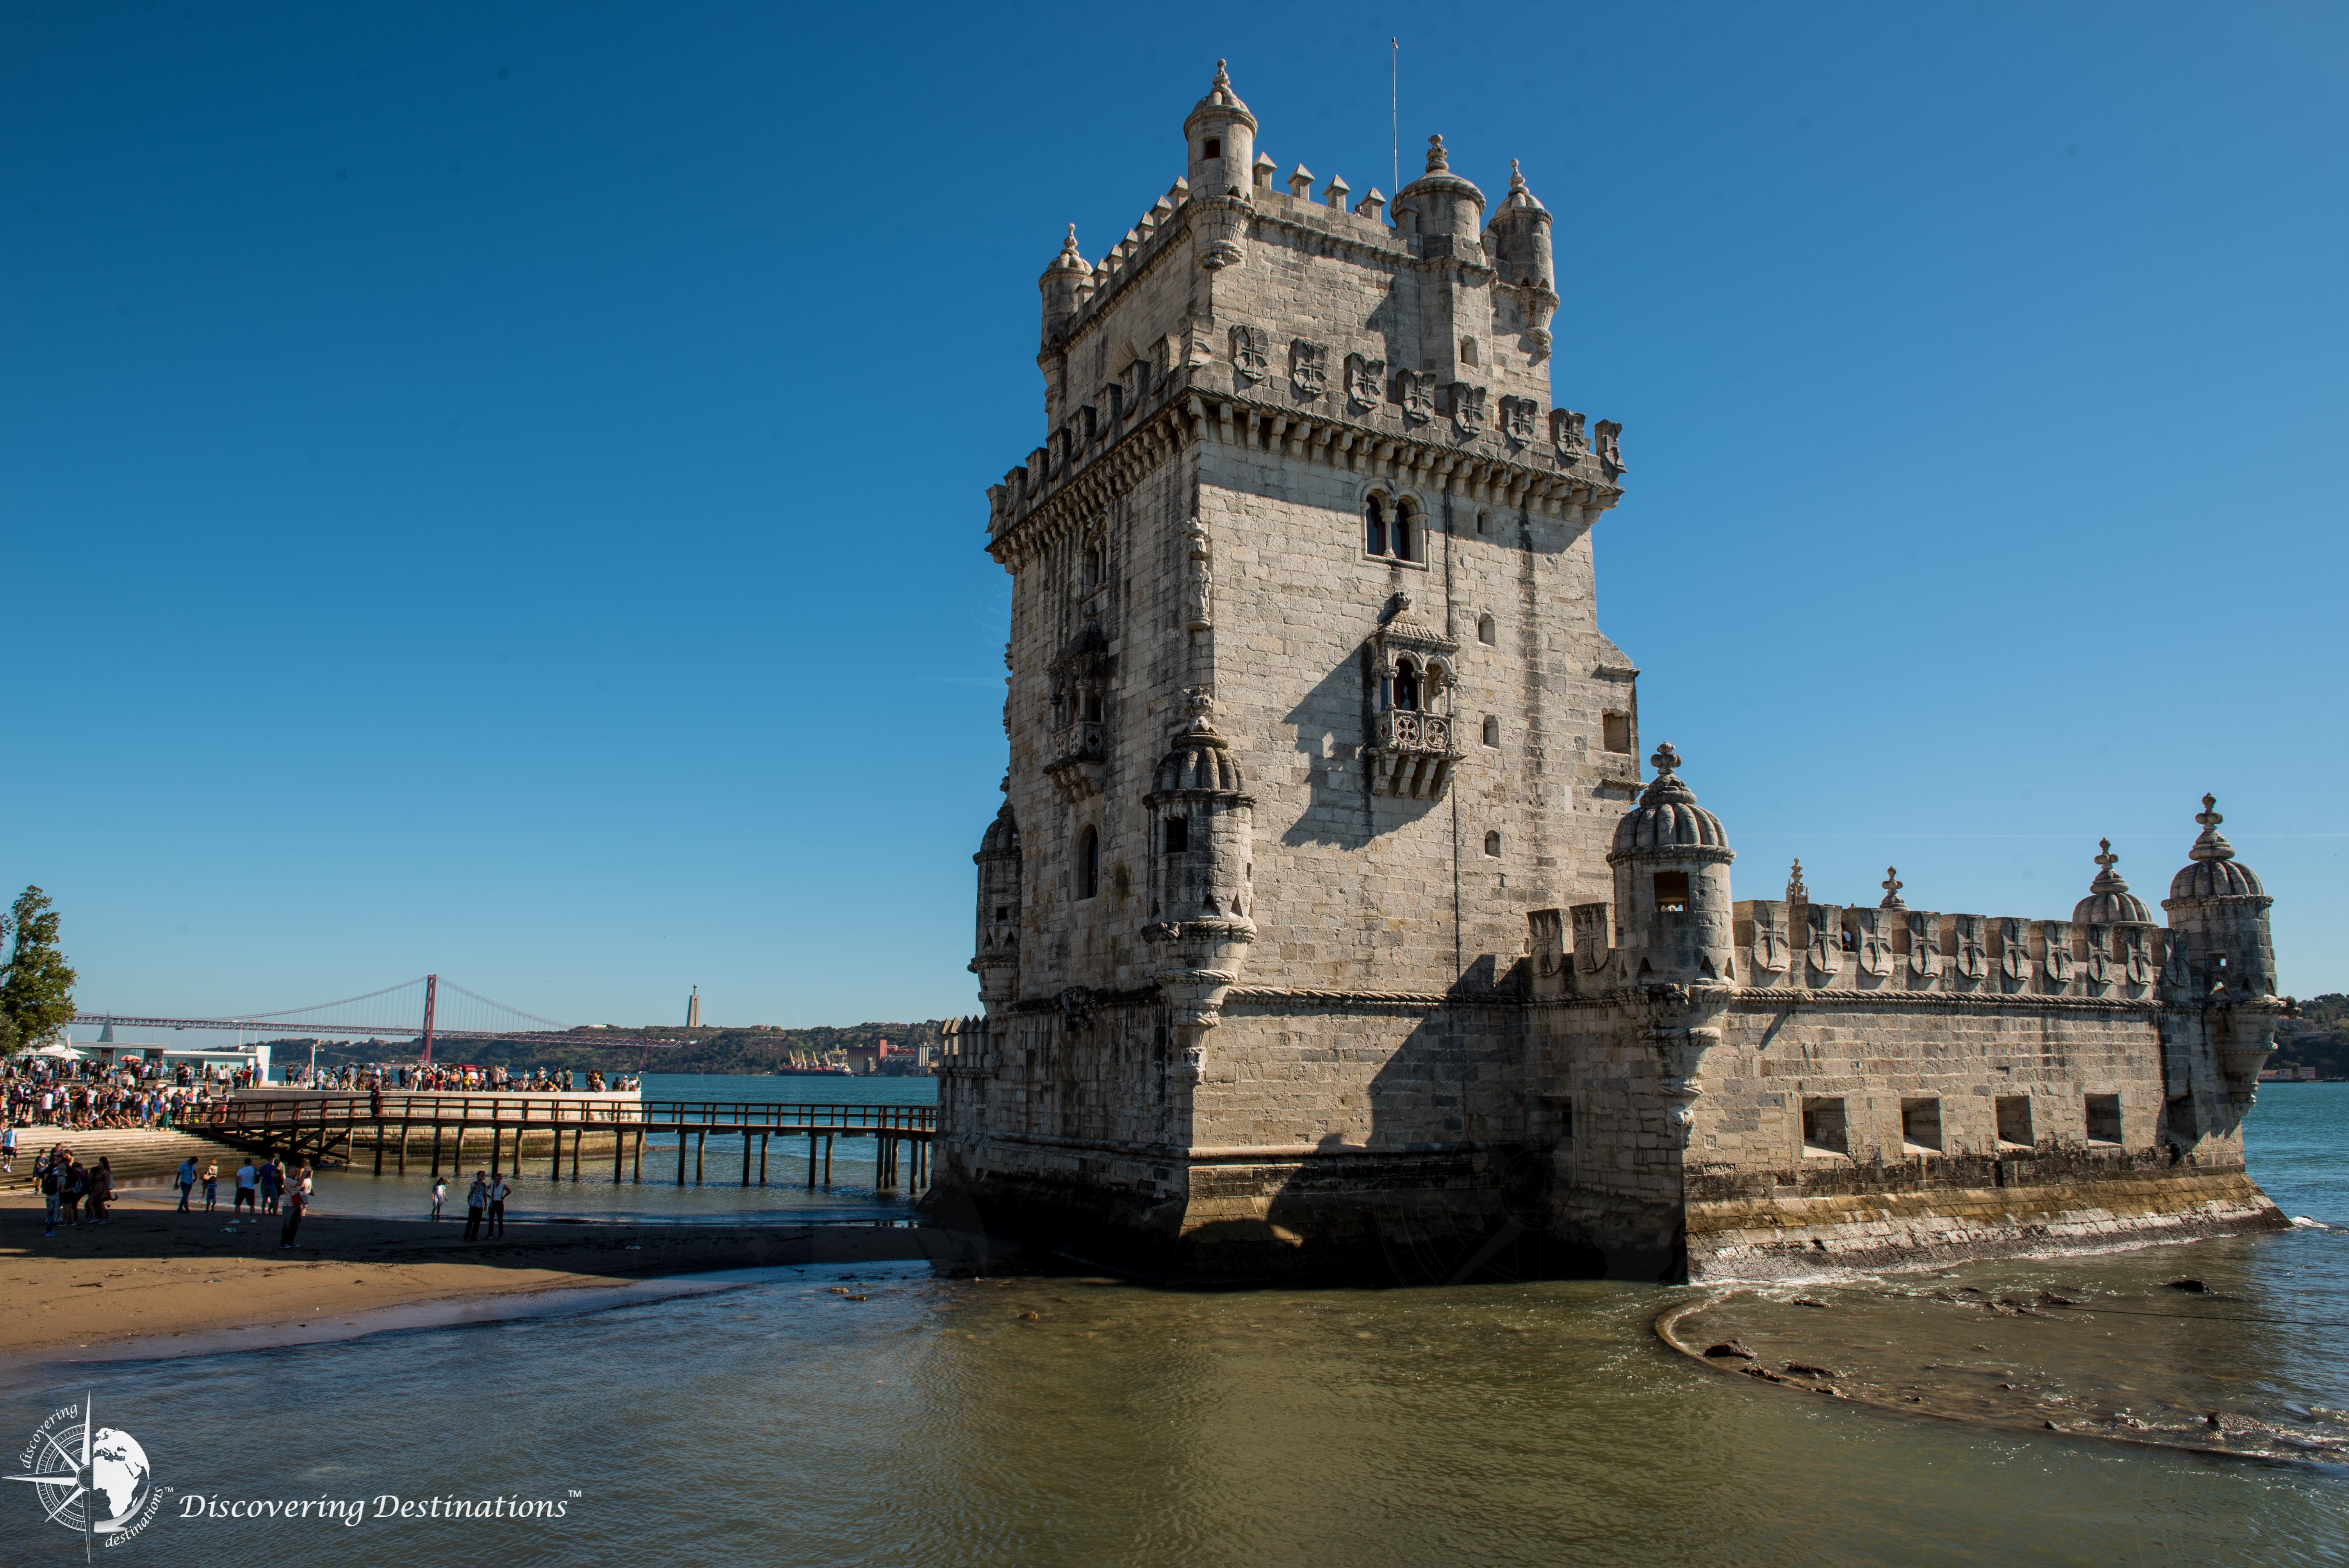 Close up of the Belém Tower